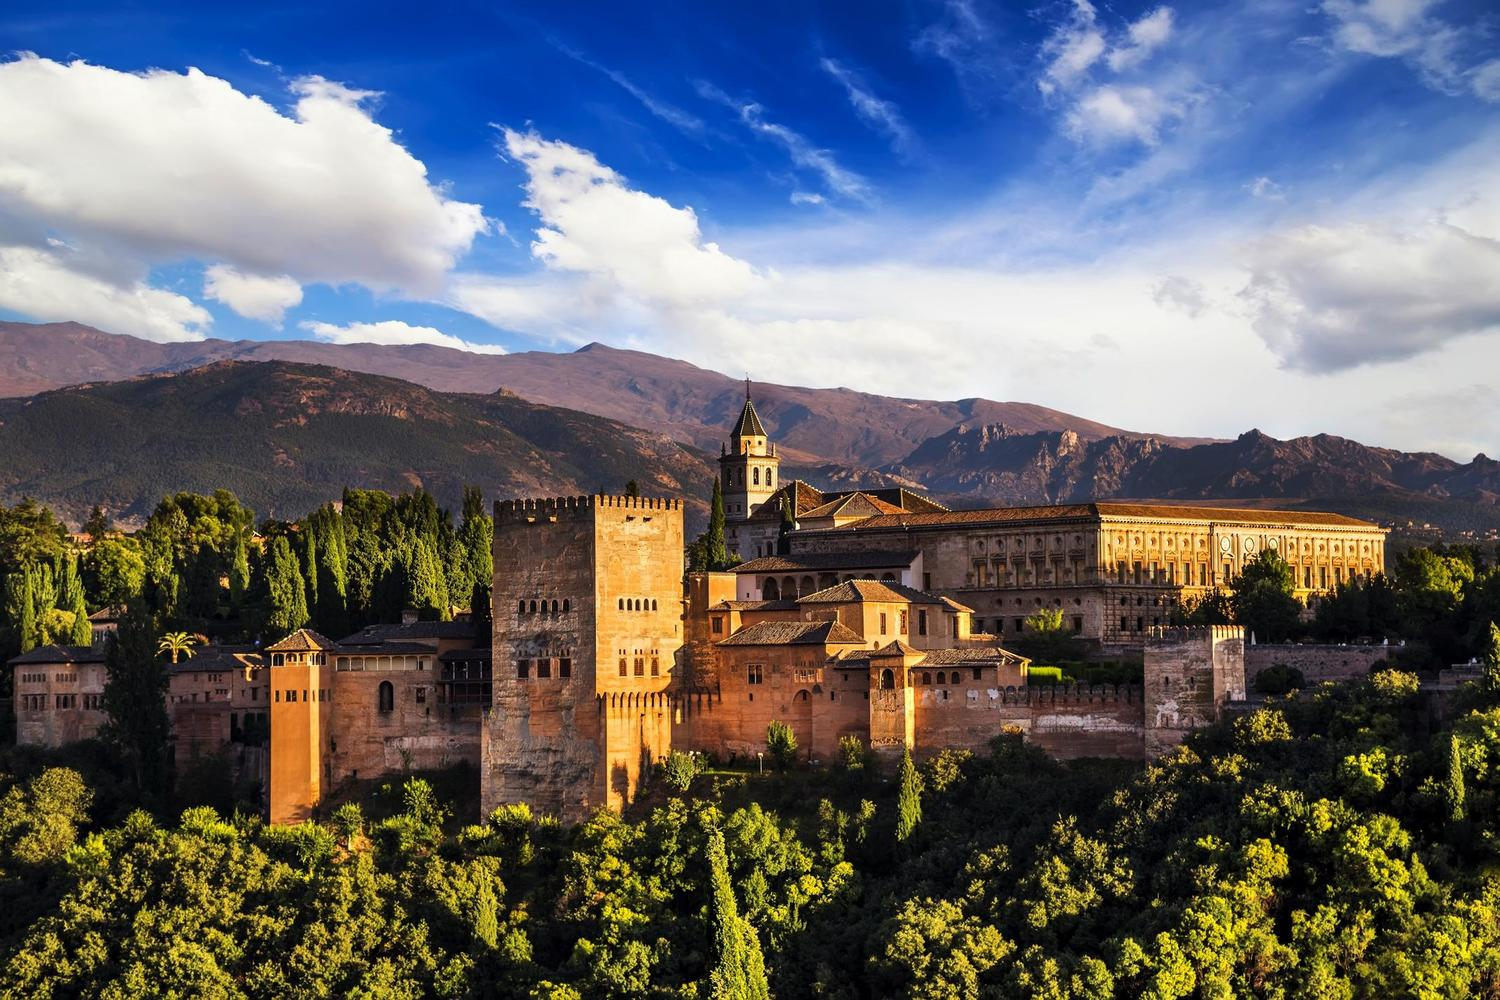 The stunning Alhambra palace, highlight of Granada